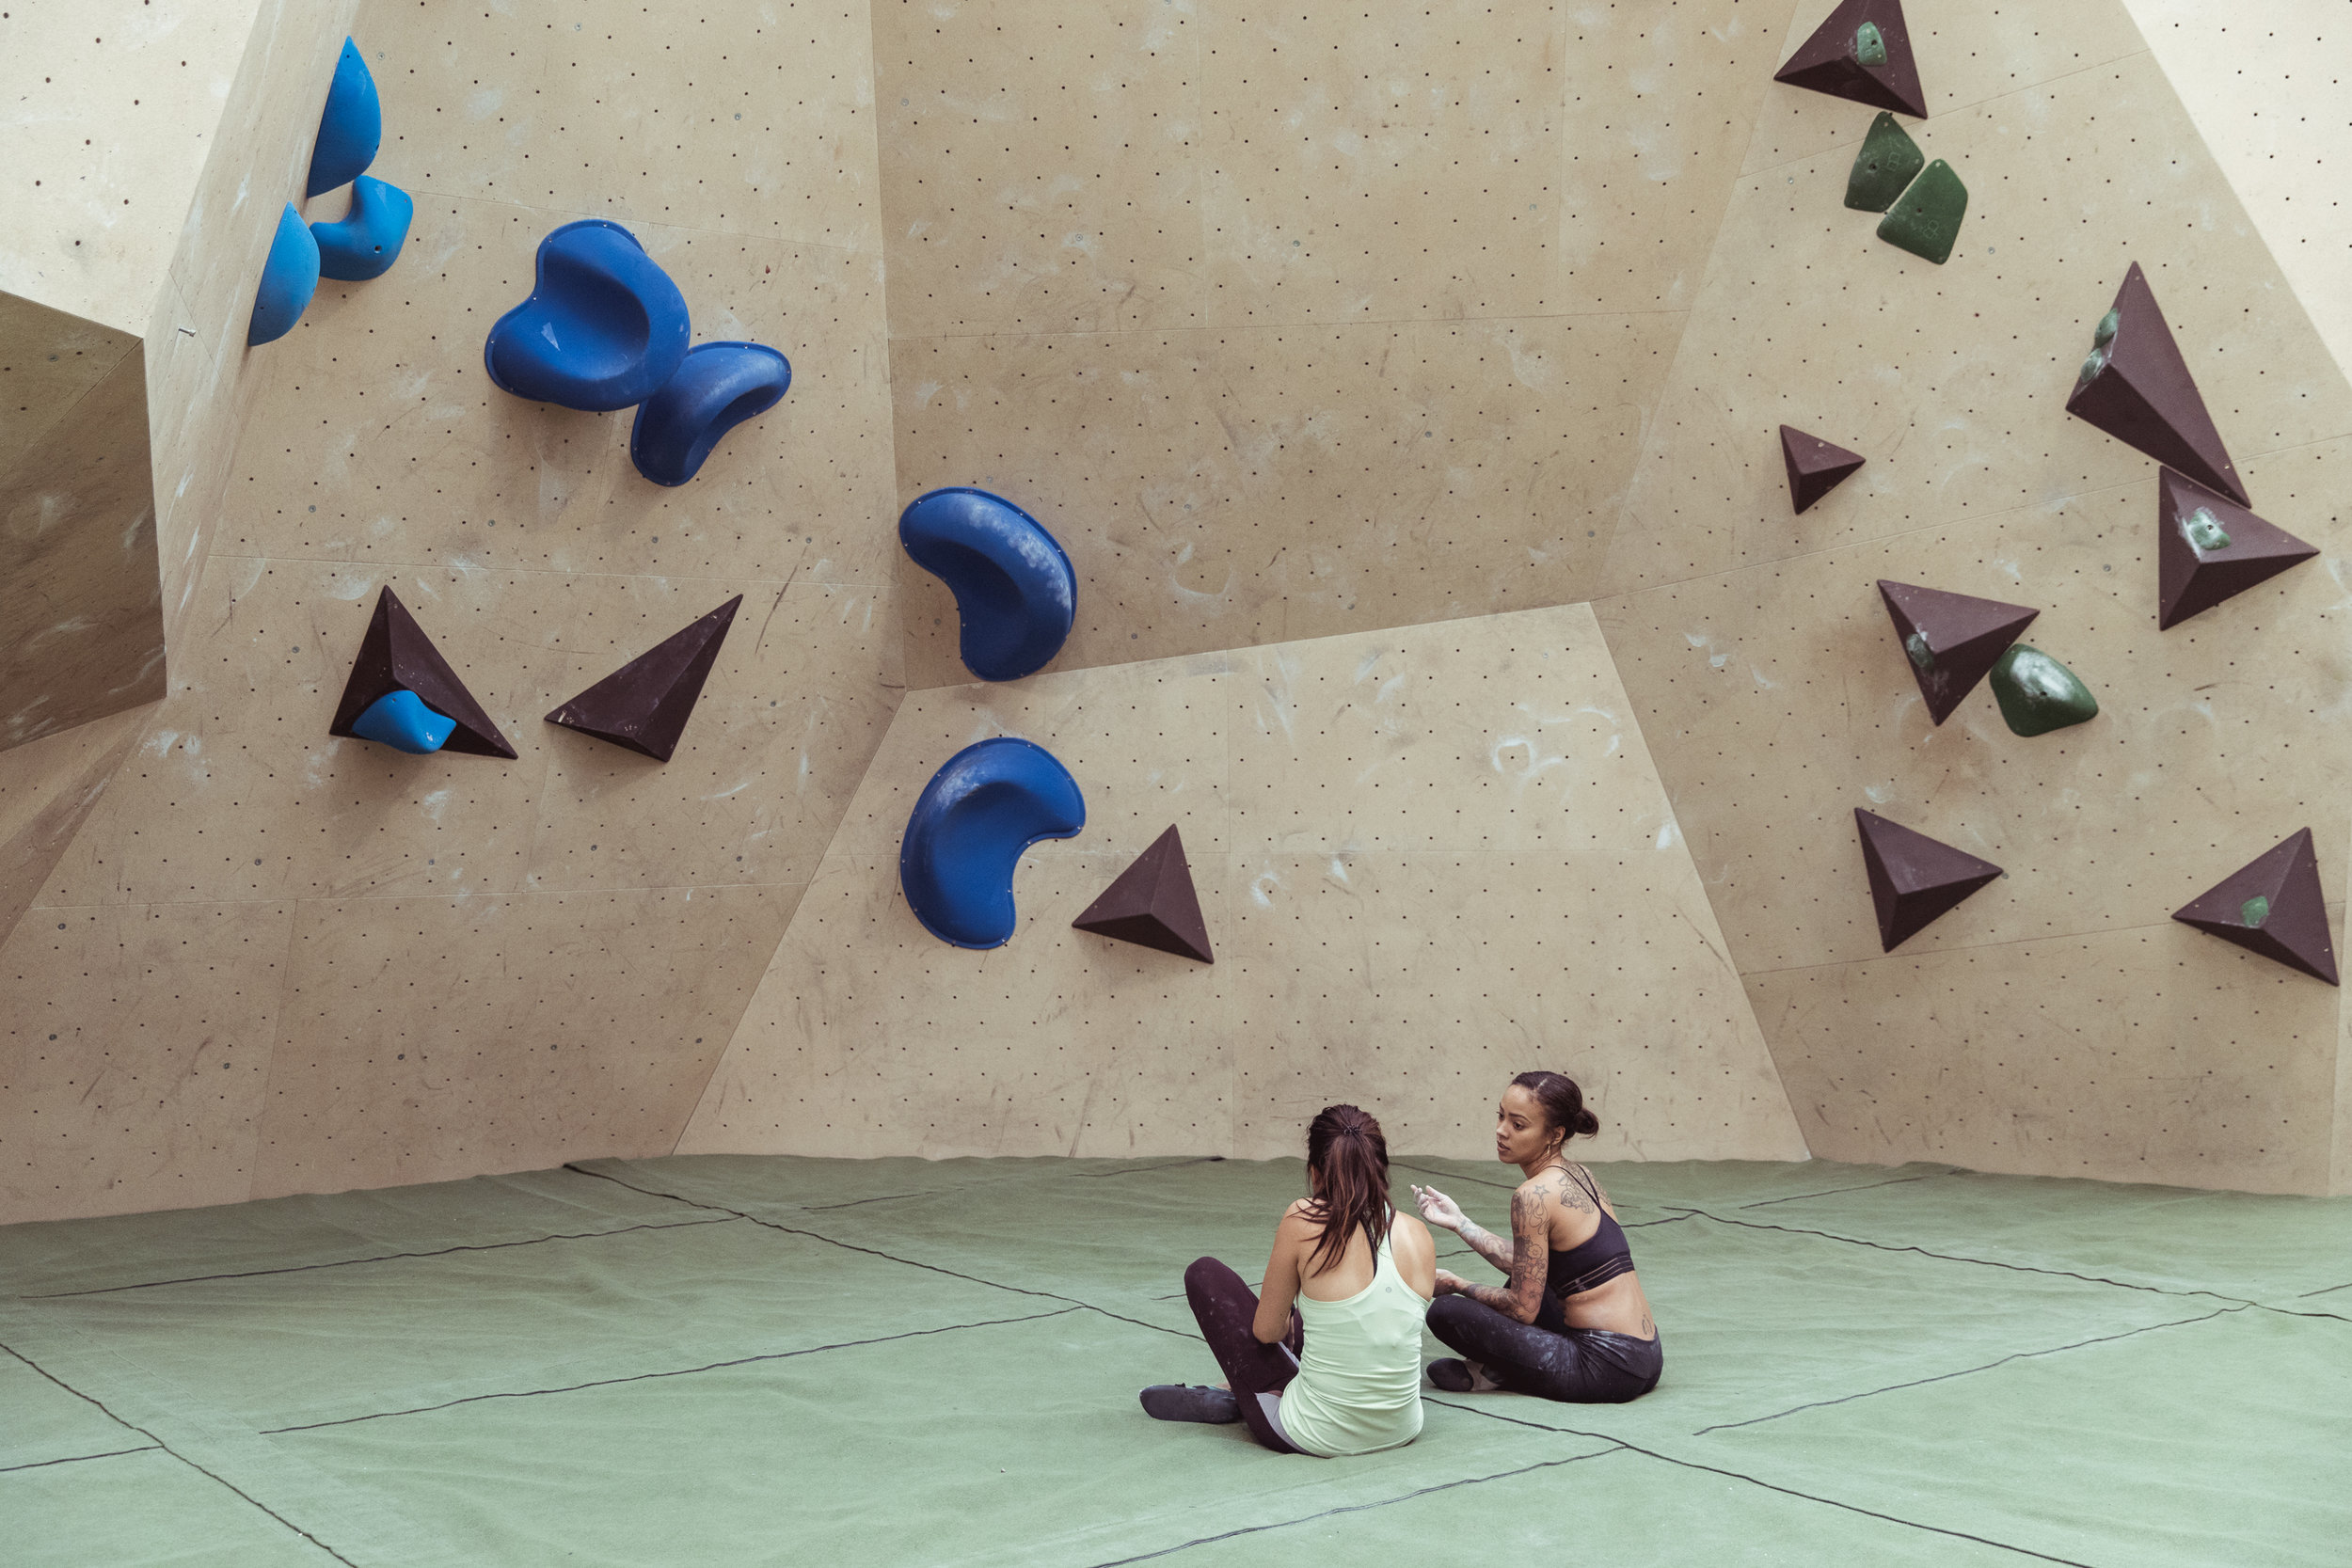 Joanne Chui and Carmen discussing the in's and out's of the moves to come. Photographer: Andy Donohoe, Climber: Joanne and Carmen, Yonder Competition Wall problem No.15 and No.11, Set 14.08.19